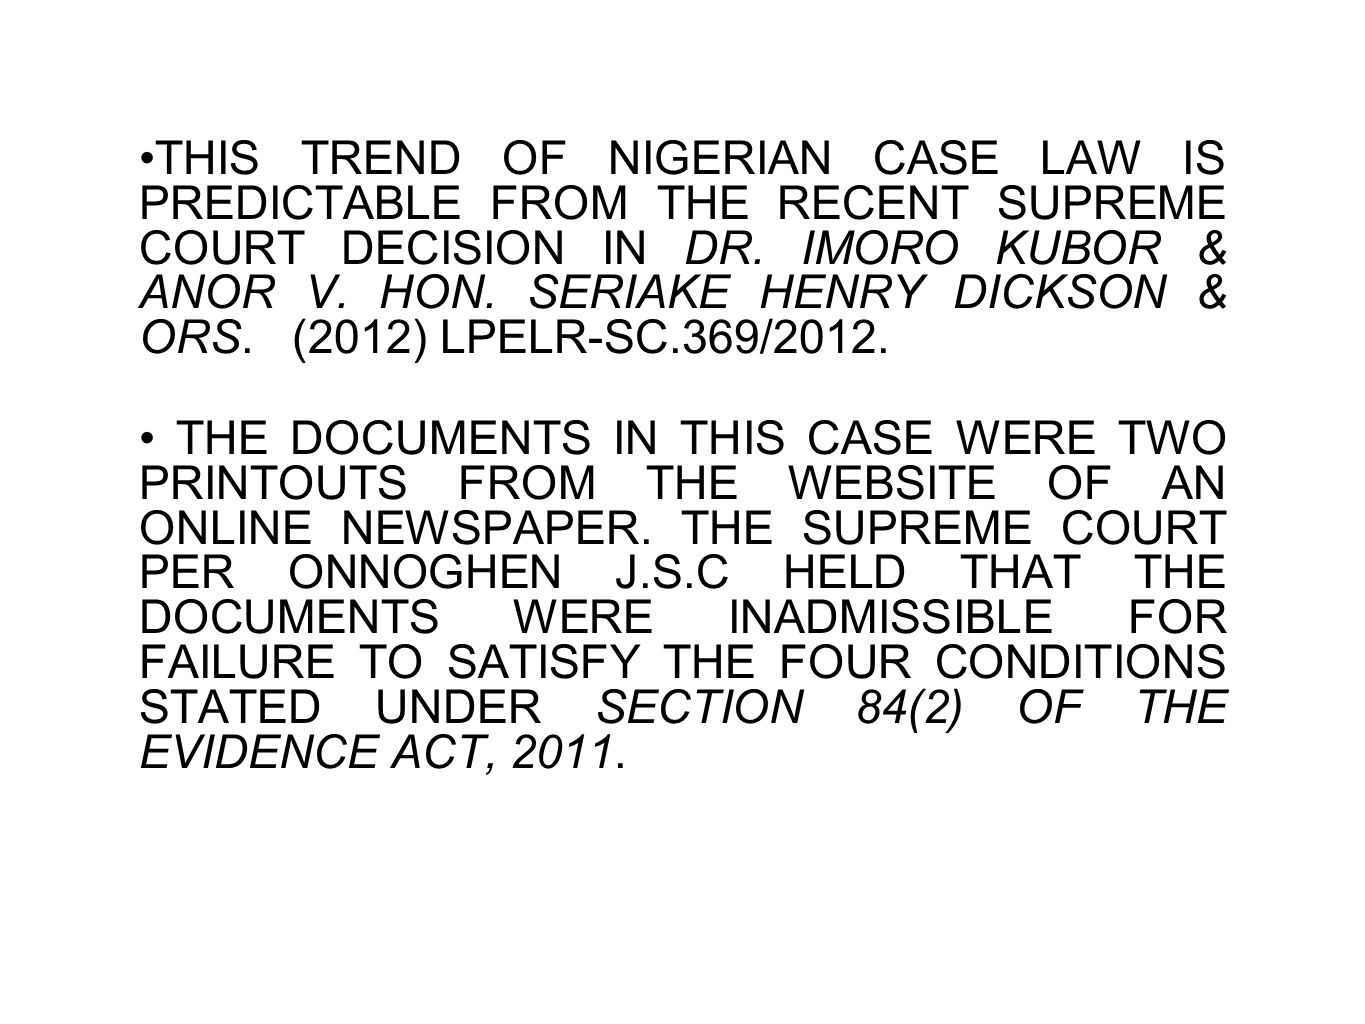 THIS TREND OF NIGERIAN CASE LAW IS PREDICTABLE FROM THE RECENT SUPREME COURT DECISION IN DR. IMORO KUBOR & ANOR V. HON. SERIAKE HENRY DICKSON & ORS. (